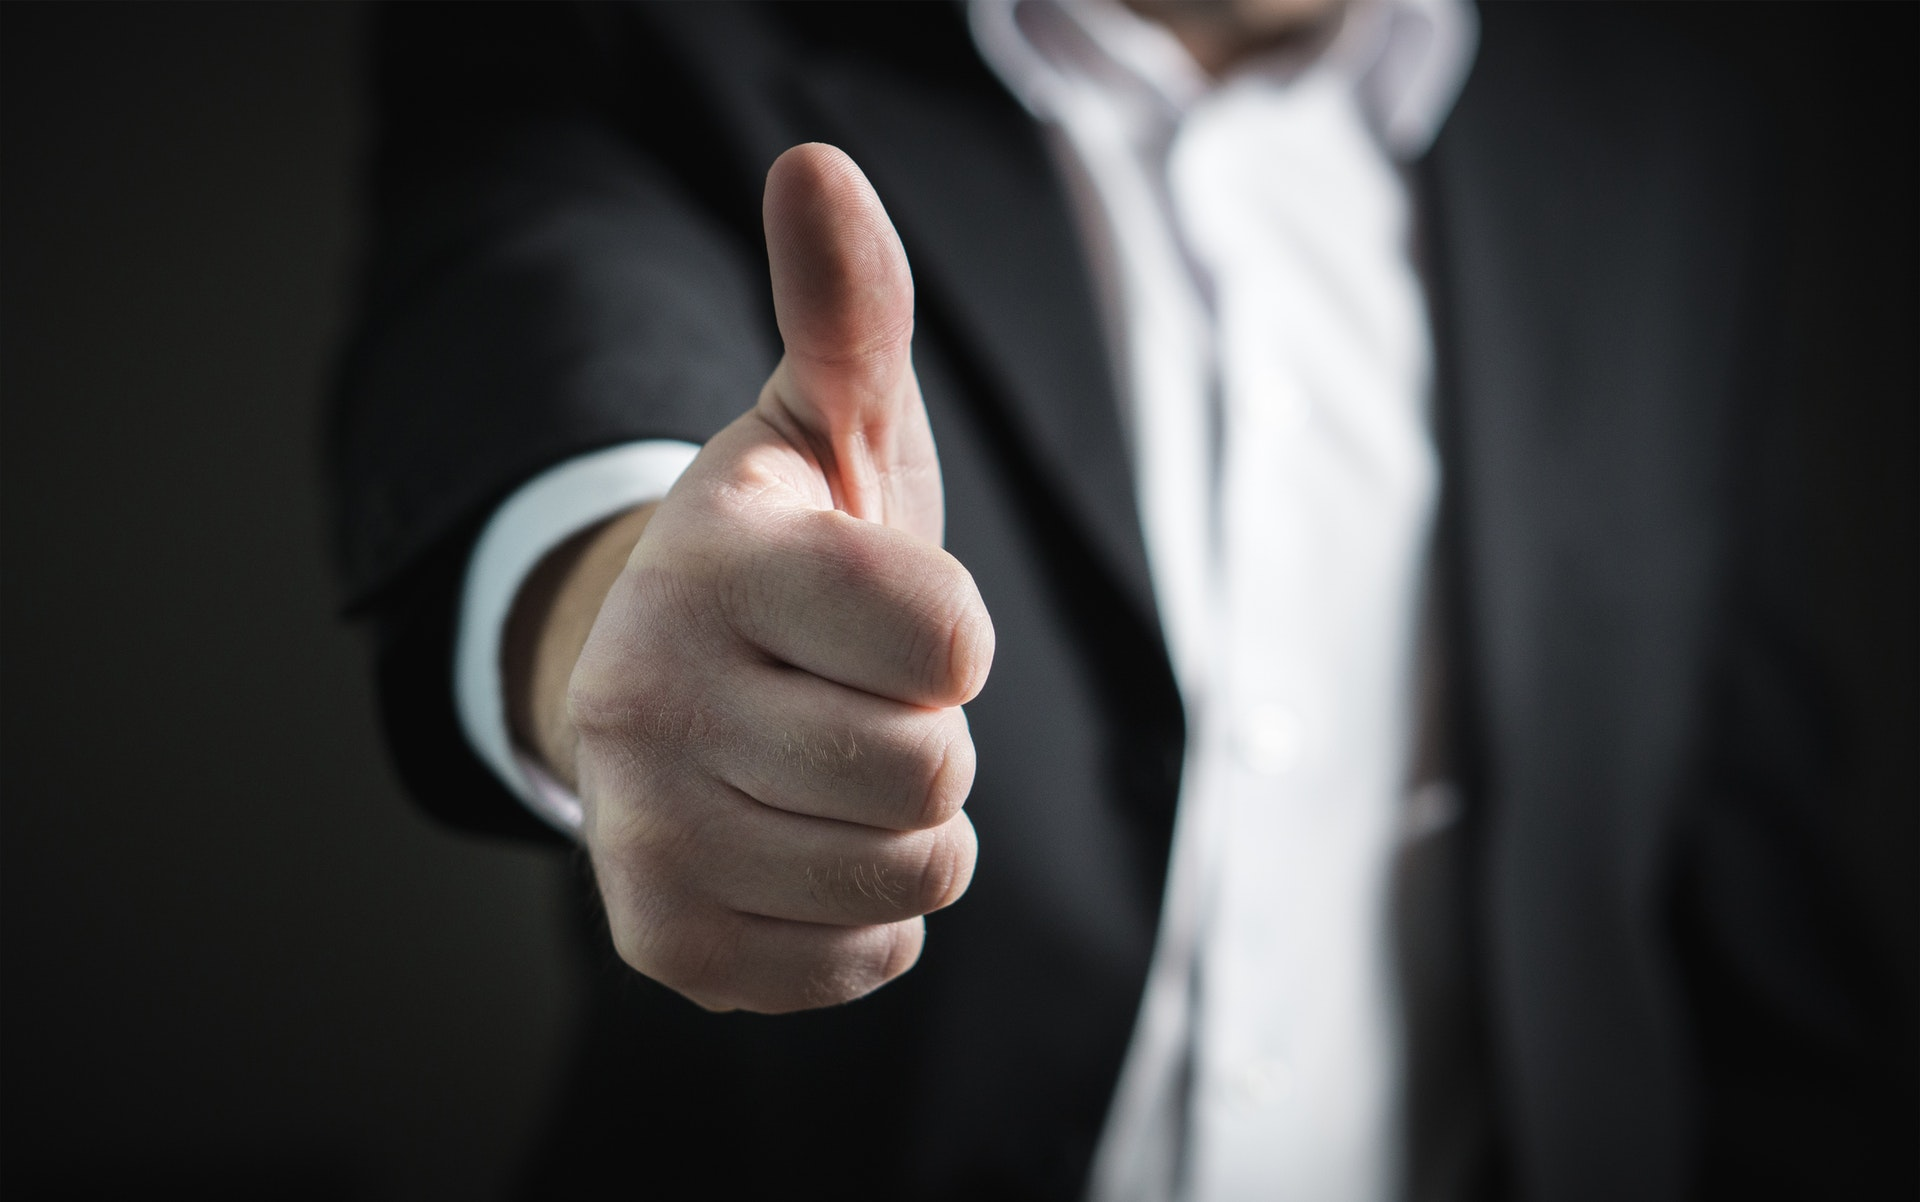 Man in suit showing thumbs up